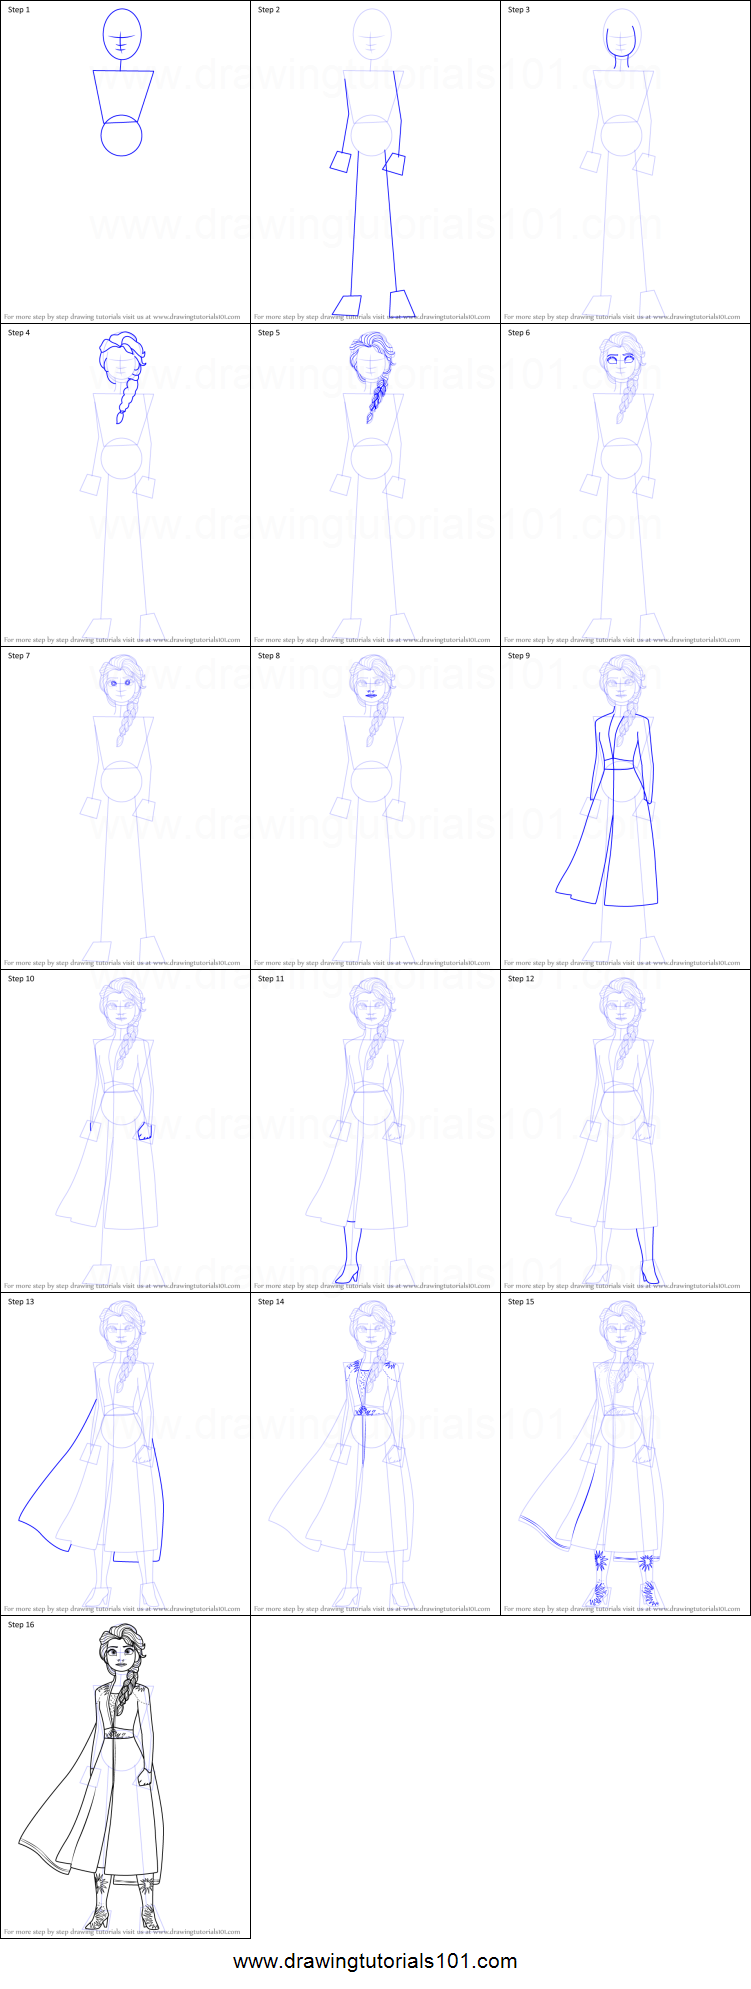 How To Draw Elsa From Frozen 2 Printable Drawing Sheet By Drawingtutorials101 Com In 2020 How To Draw Elsa Drawing Sheet Elsa Frozen